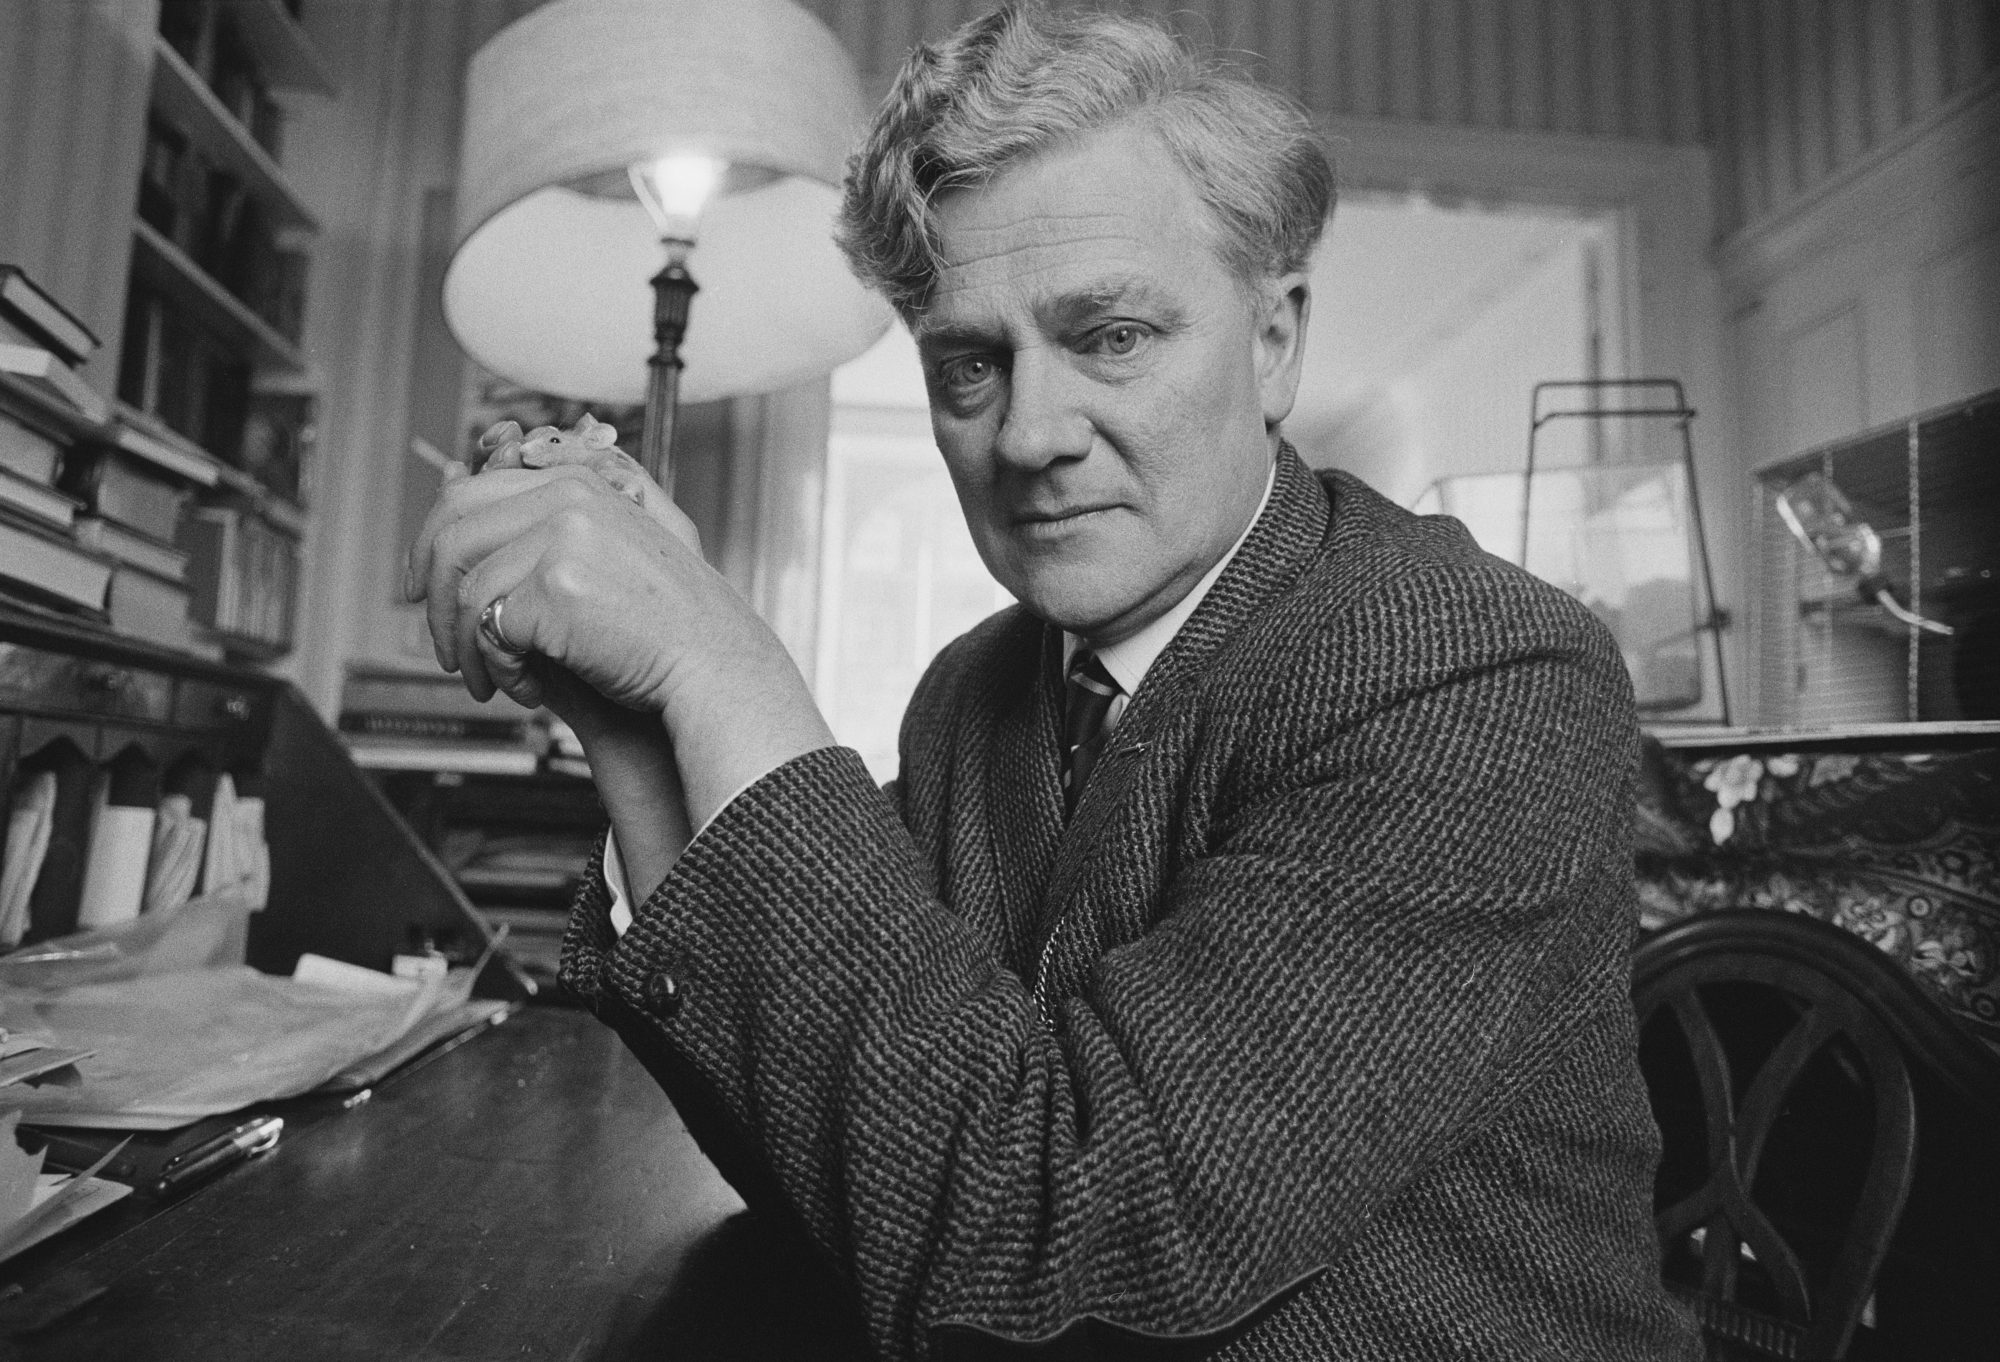 English novelist Richard Adams holding a pet mouse, 3rd March 1974. (Photo by Tom Smith/Daily Express/Hulton Archive/Getty Images)